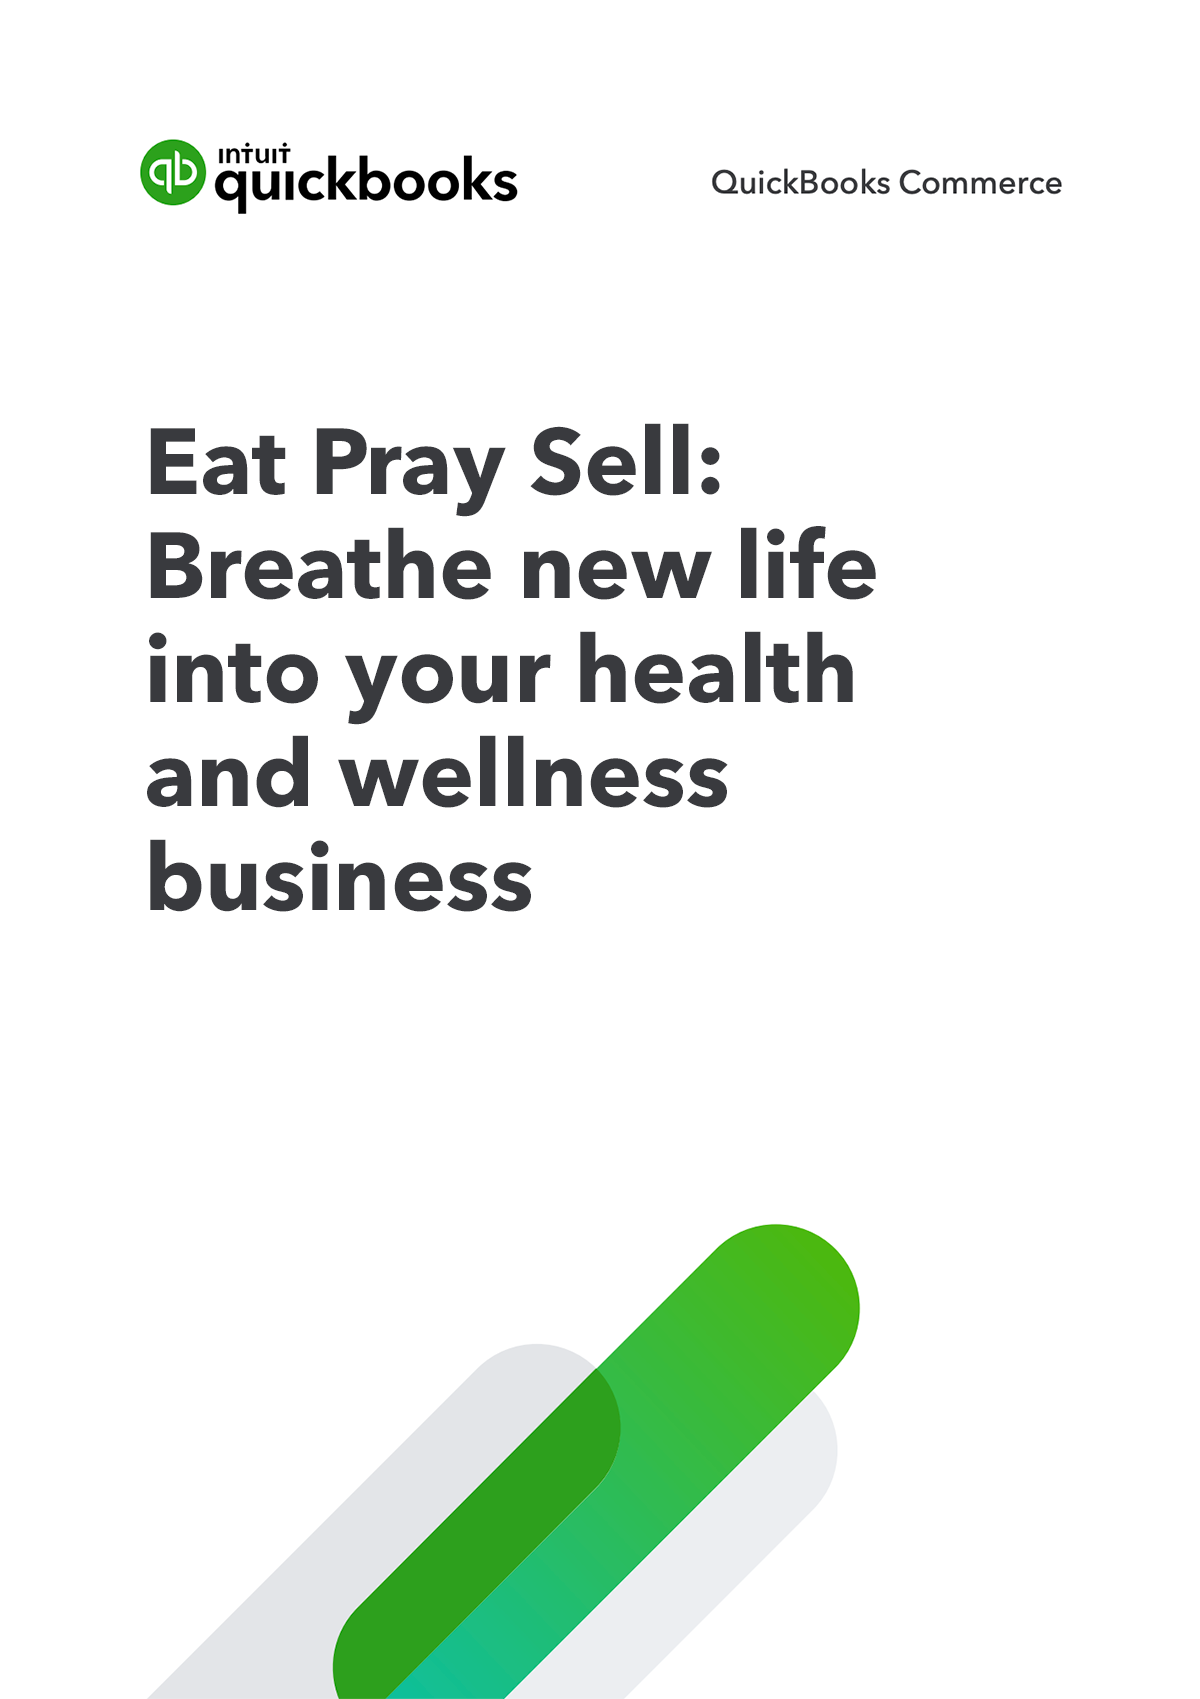 Eat Pray Sell: Breathe new life into your health and wellness small business